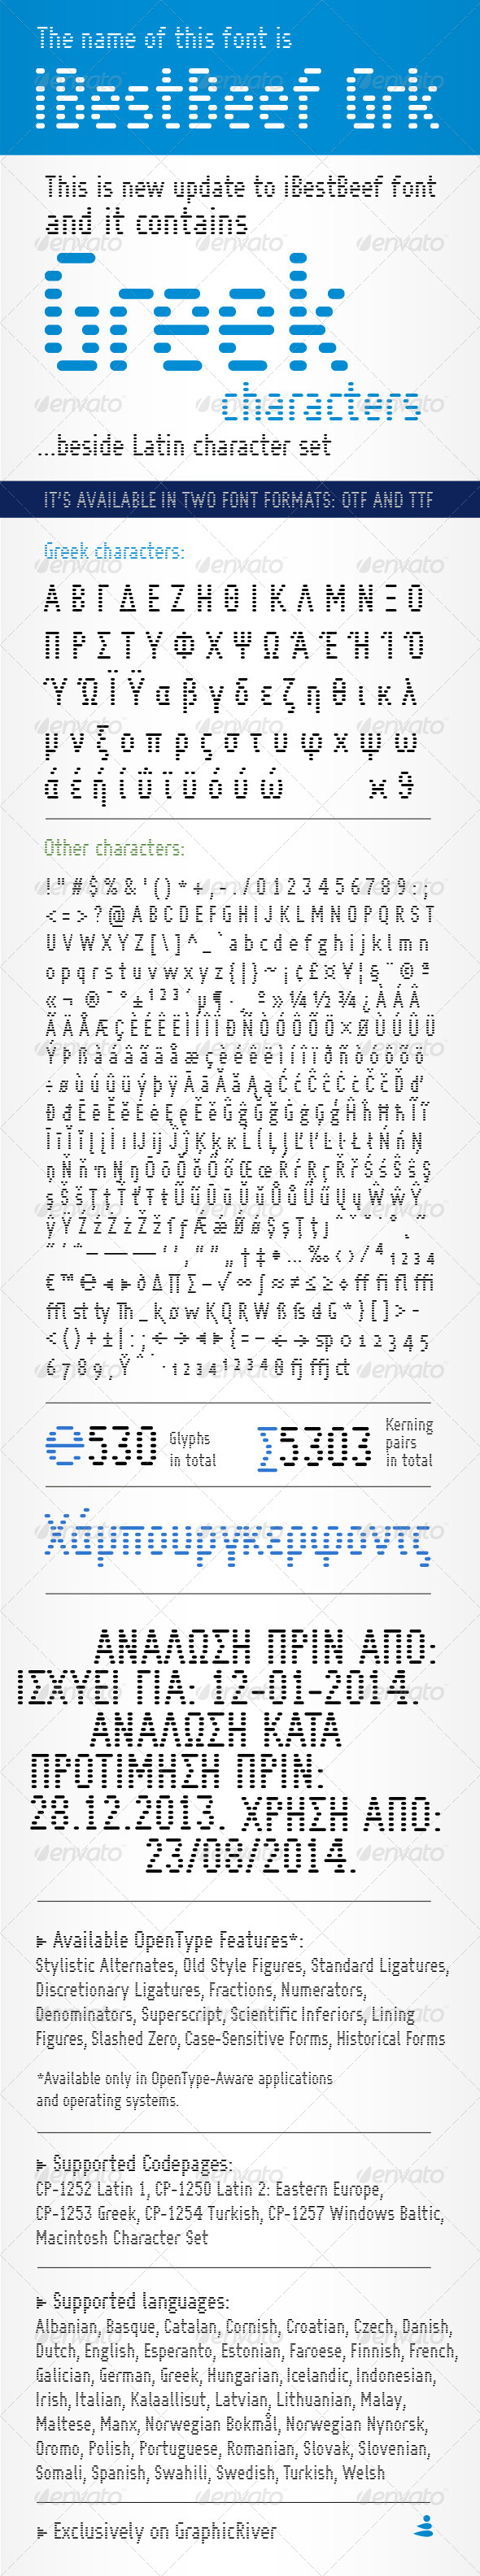 GraphicRiver iBestBeef Grk font 6453626